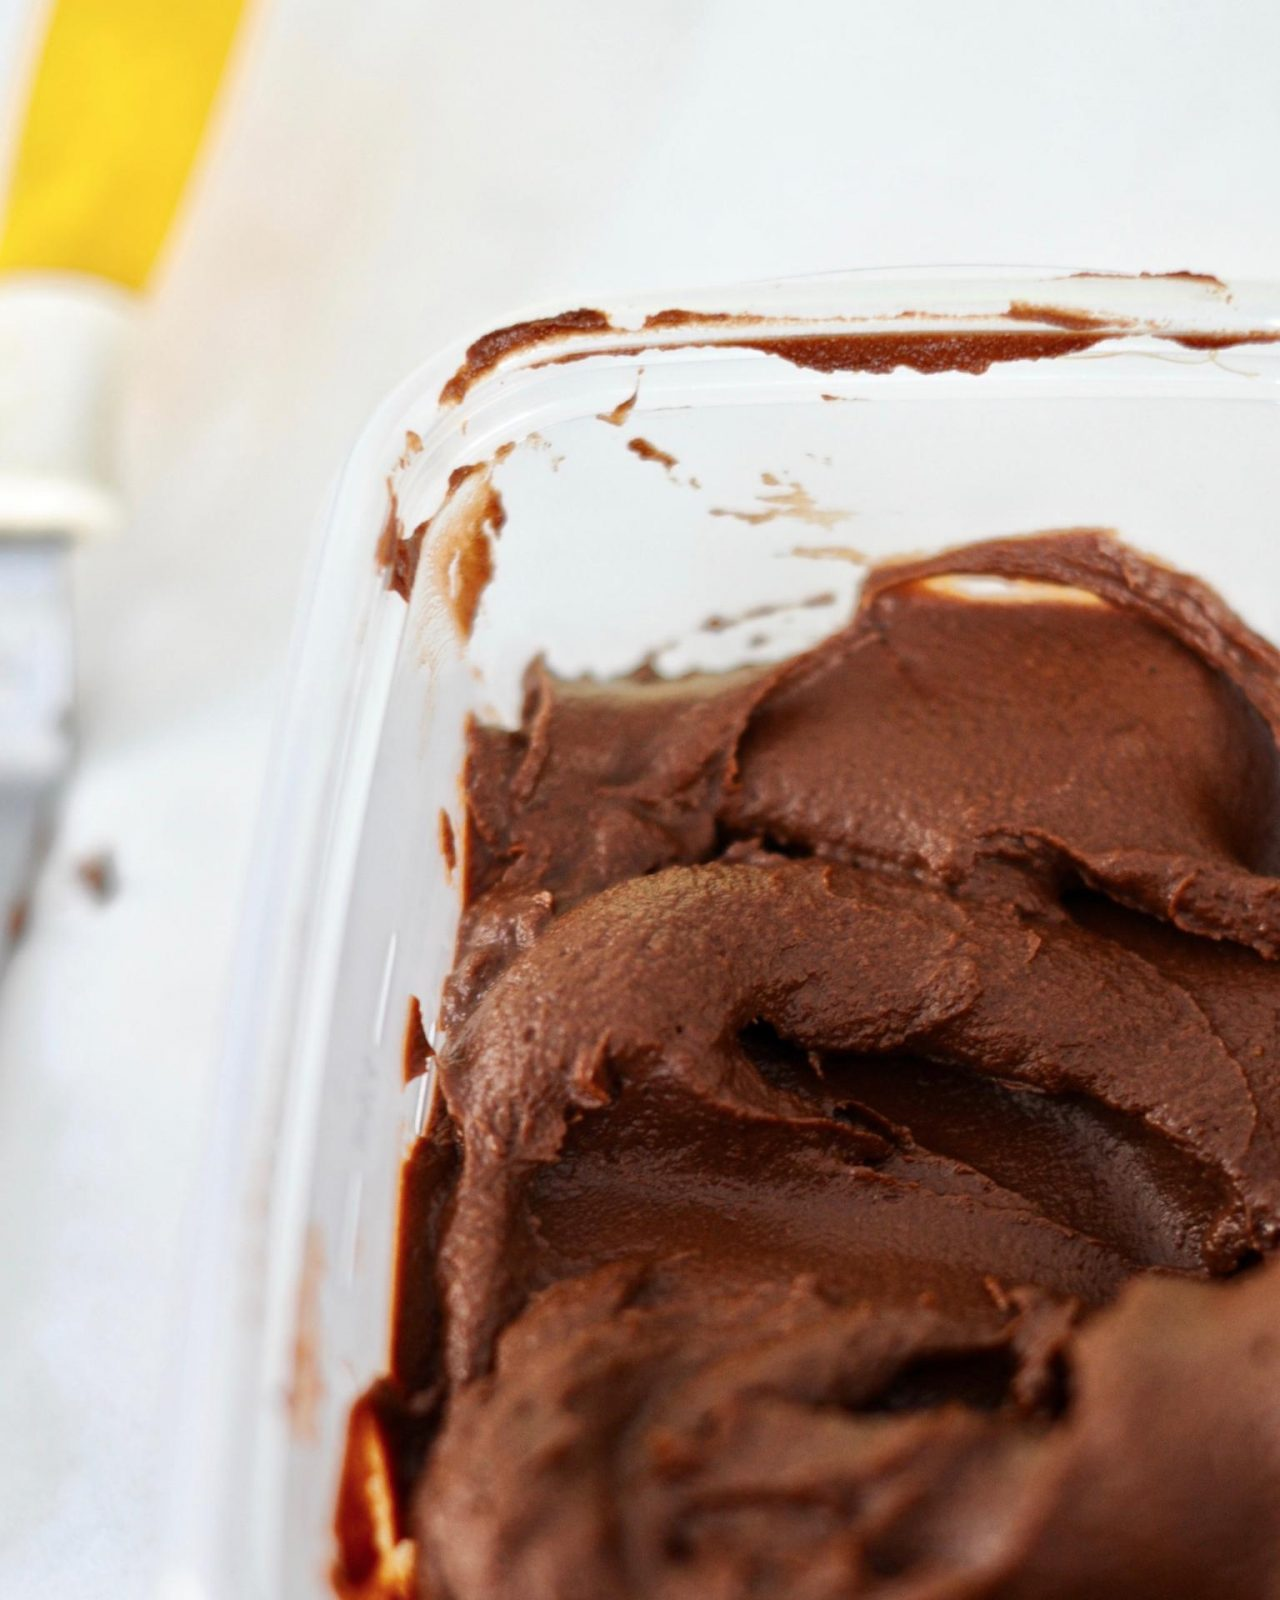 Vegan Dark Chocolate Ice Cream, Gluten Free with Aquafaba